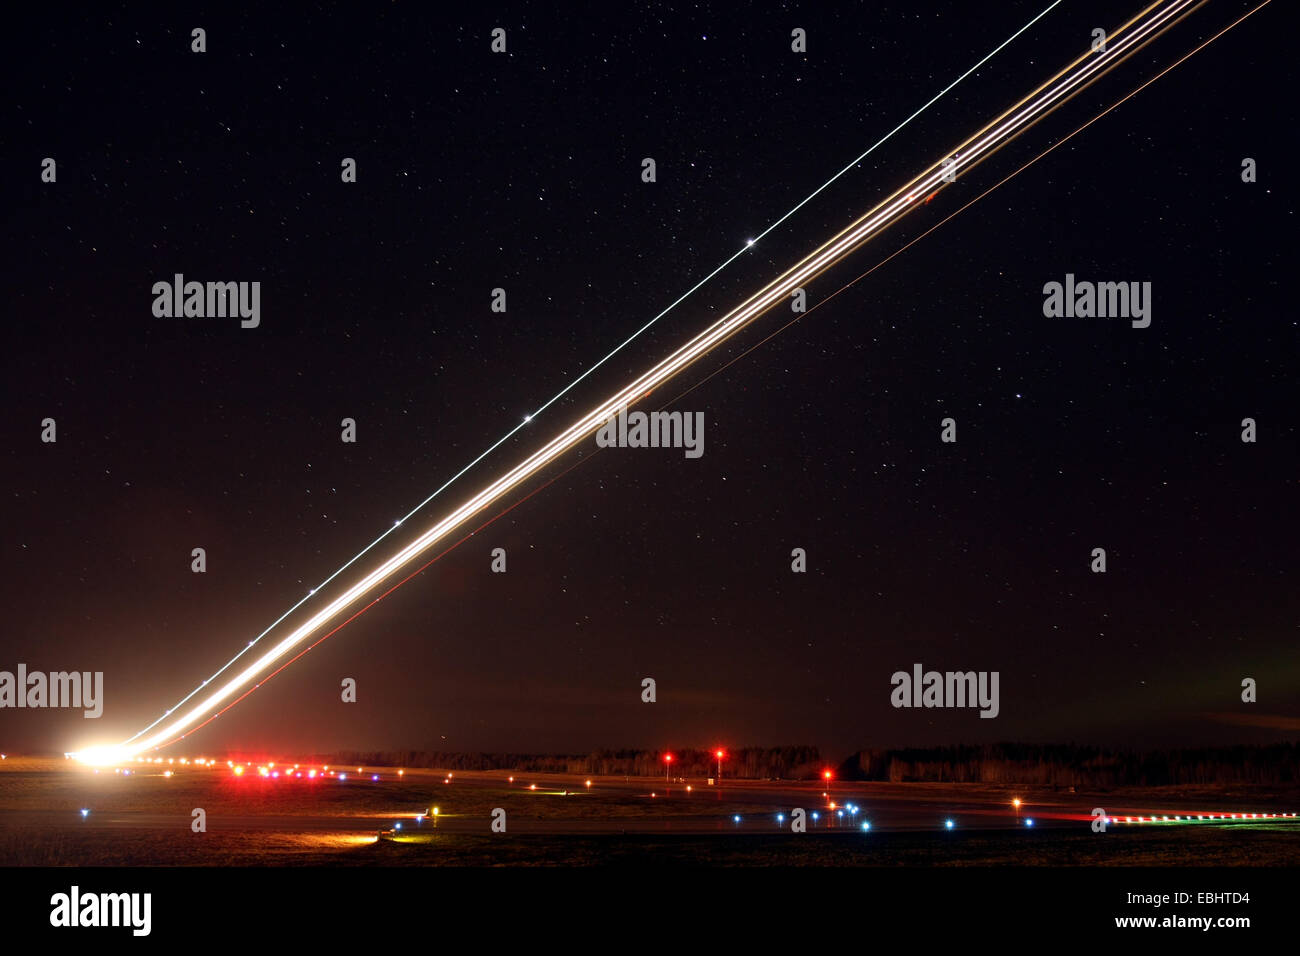 Light trails from an airliner taking off in the night from Skavsta airport, Sweden. - Stock Image